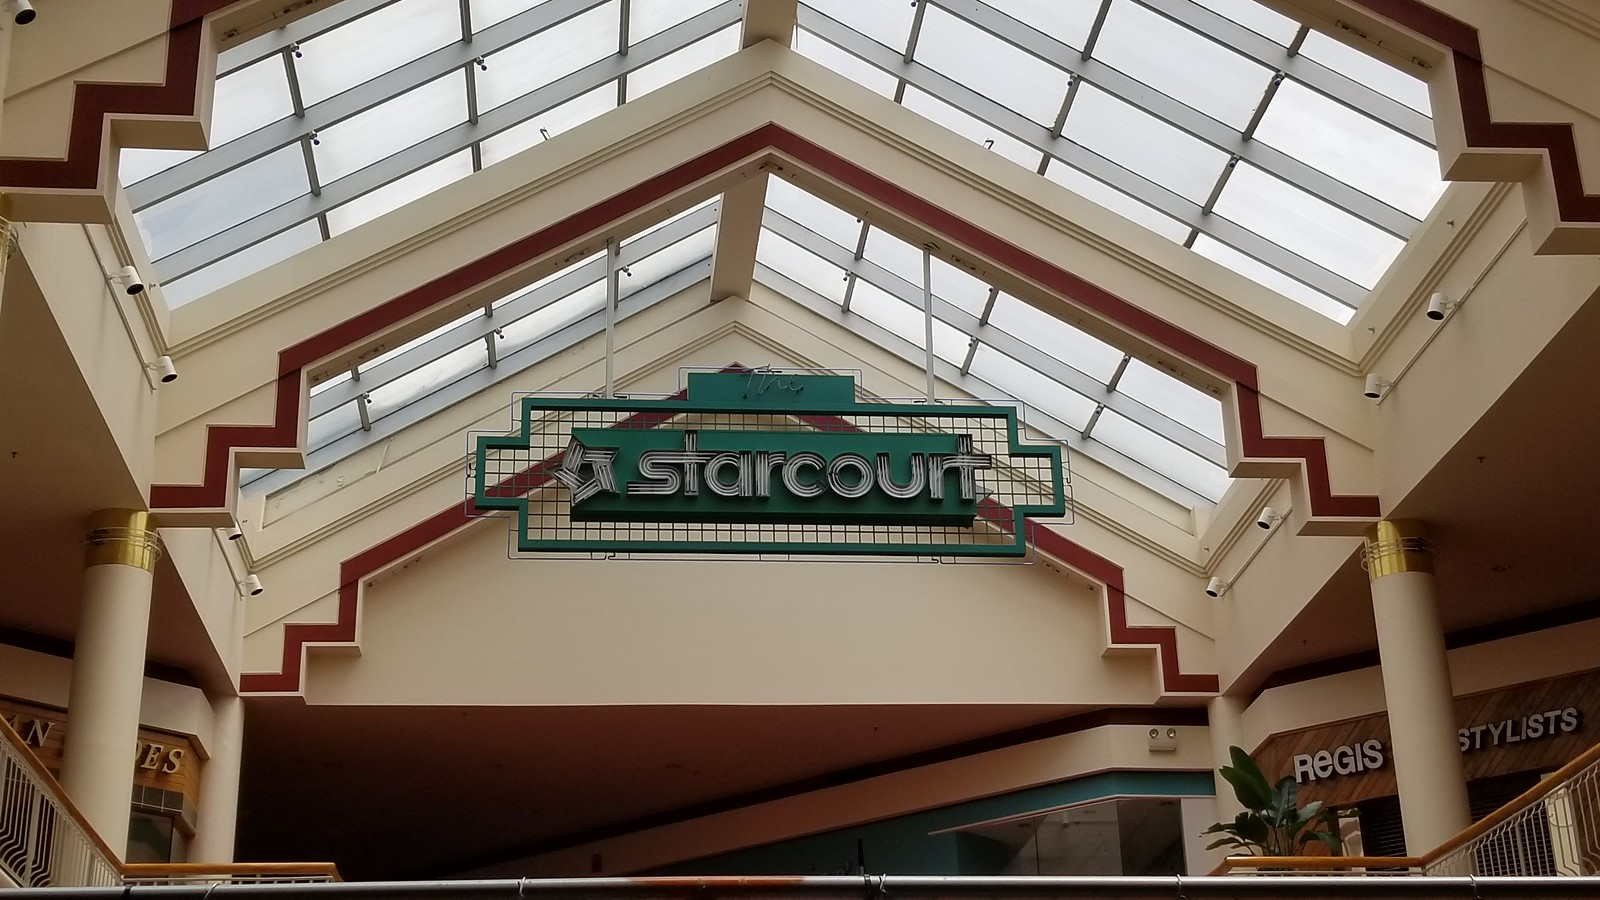 Starcourt MallGwinnett Place Mall Duluth GA July 2018 Flickr